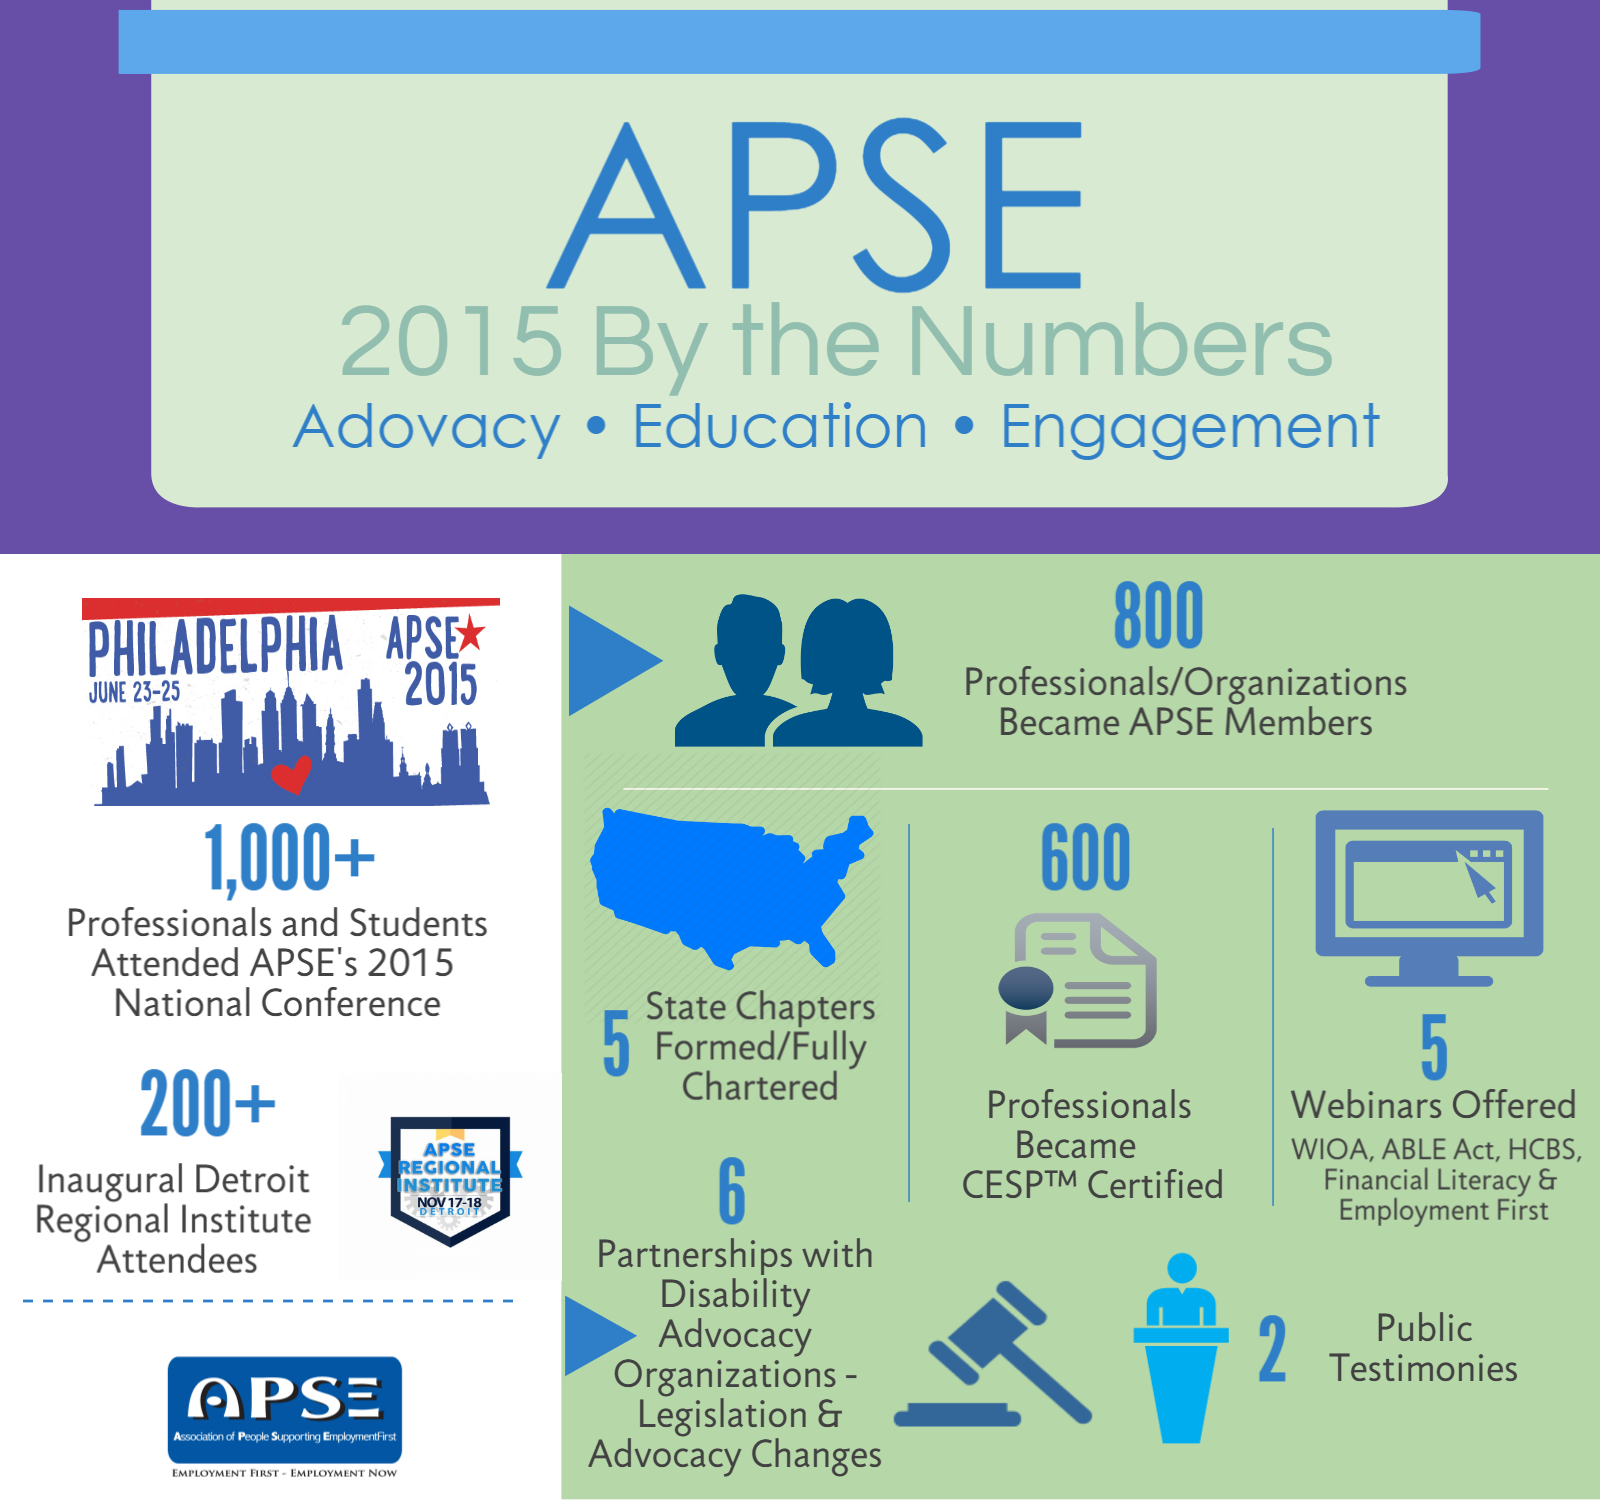 apse-2015-review high res